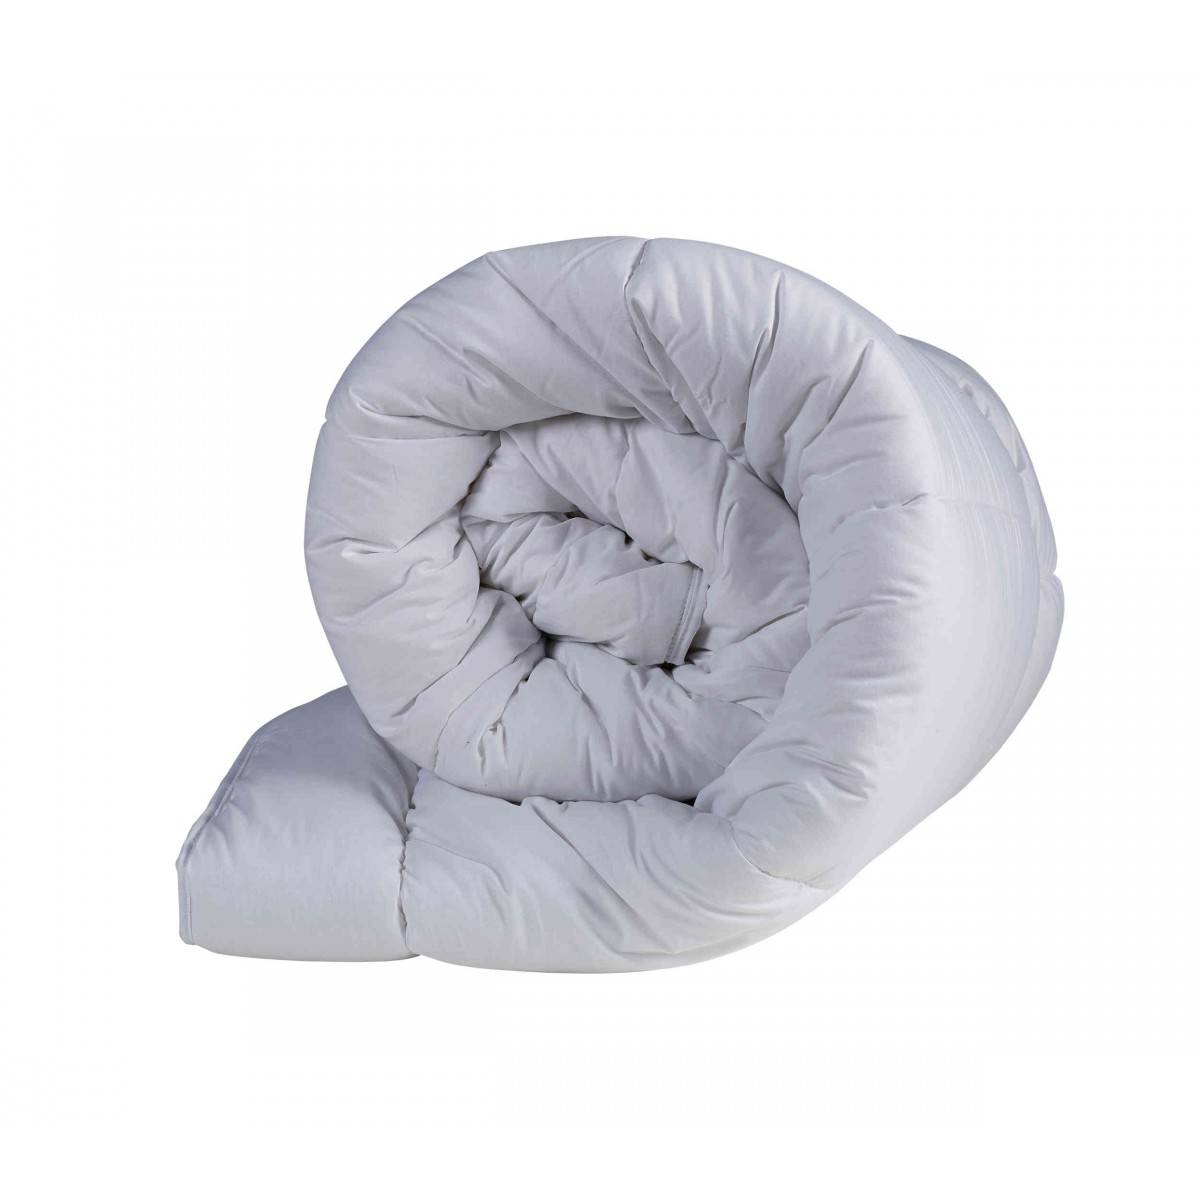 Someo Couette hiver anti-acariens 600g 200x200